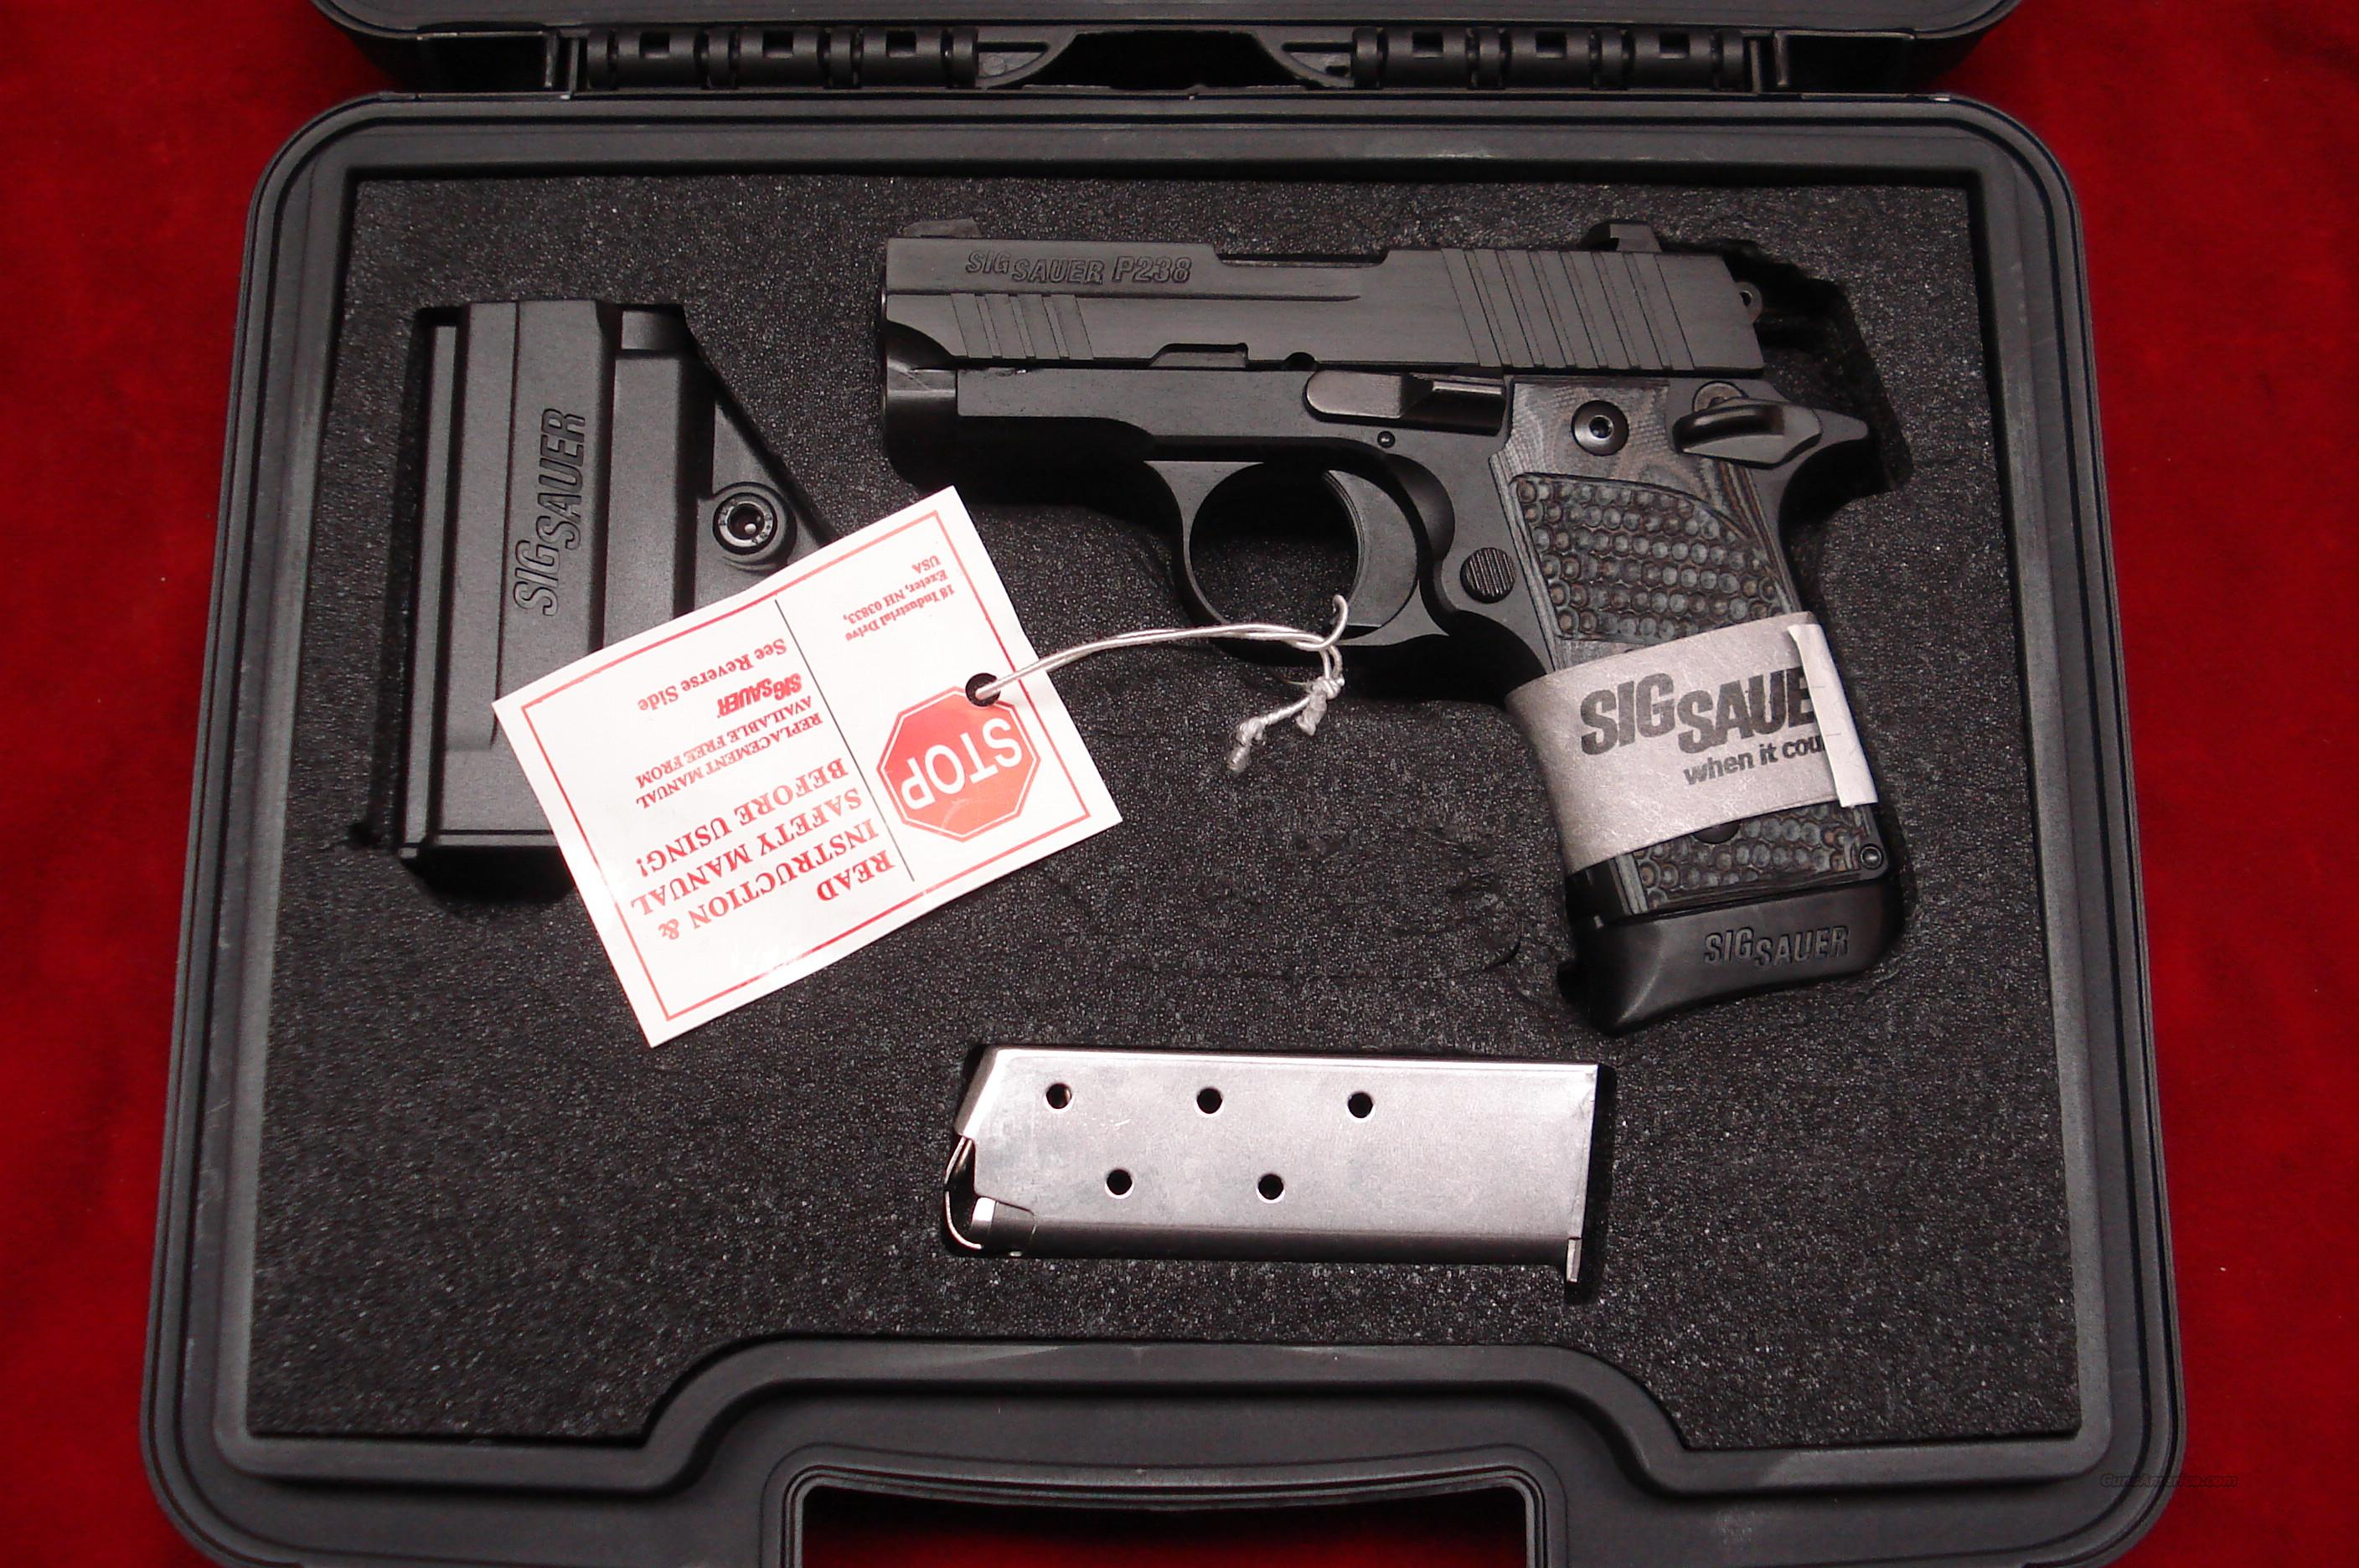 SIG SAUER P238 380CAL. W/NIGHT SIGHTS AND G-10 GRIPS NEW  Guns > Pistols > Sig - Sauer/Sigarms Pistols > Other